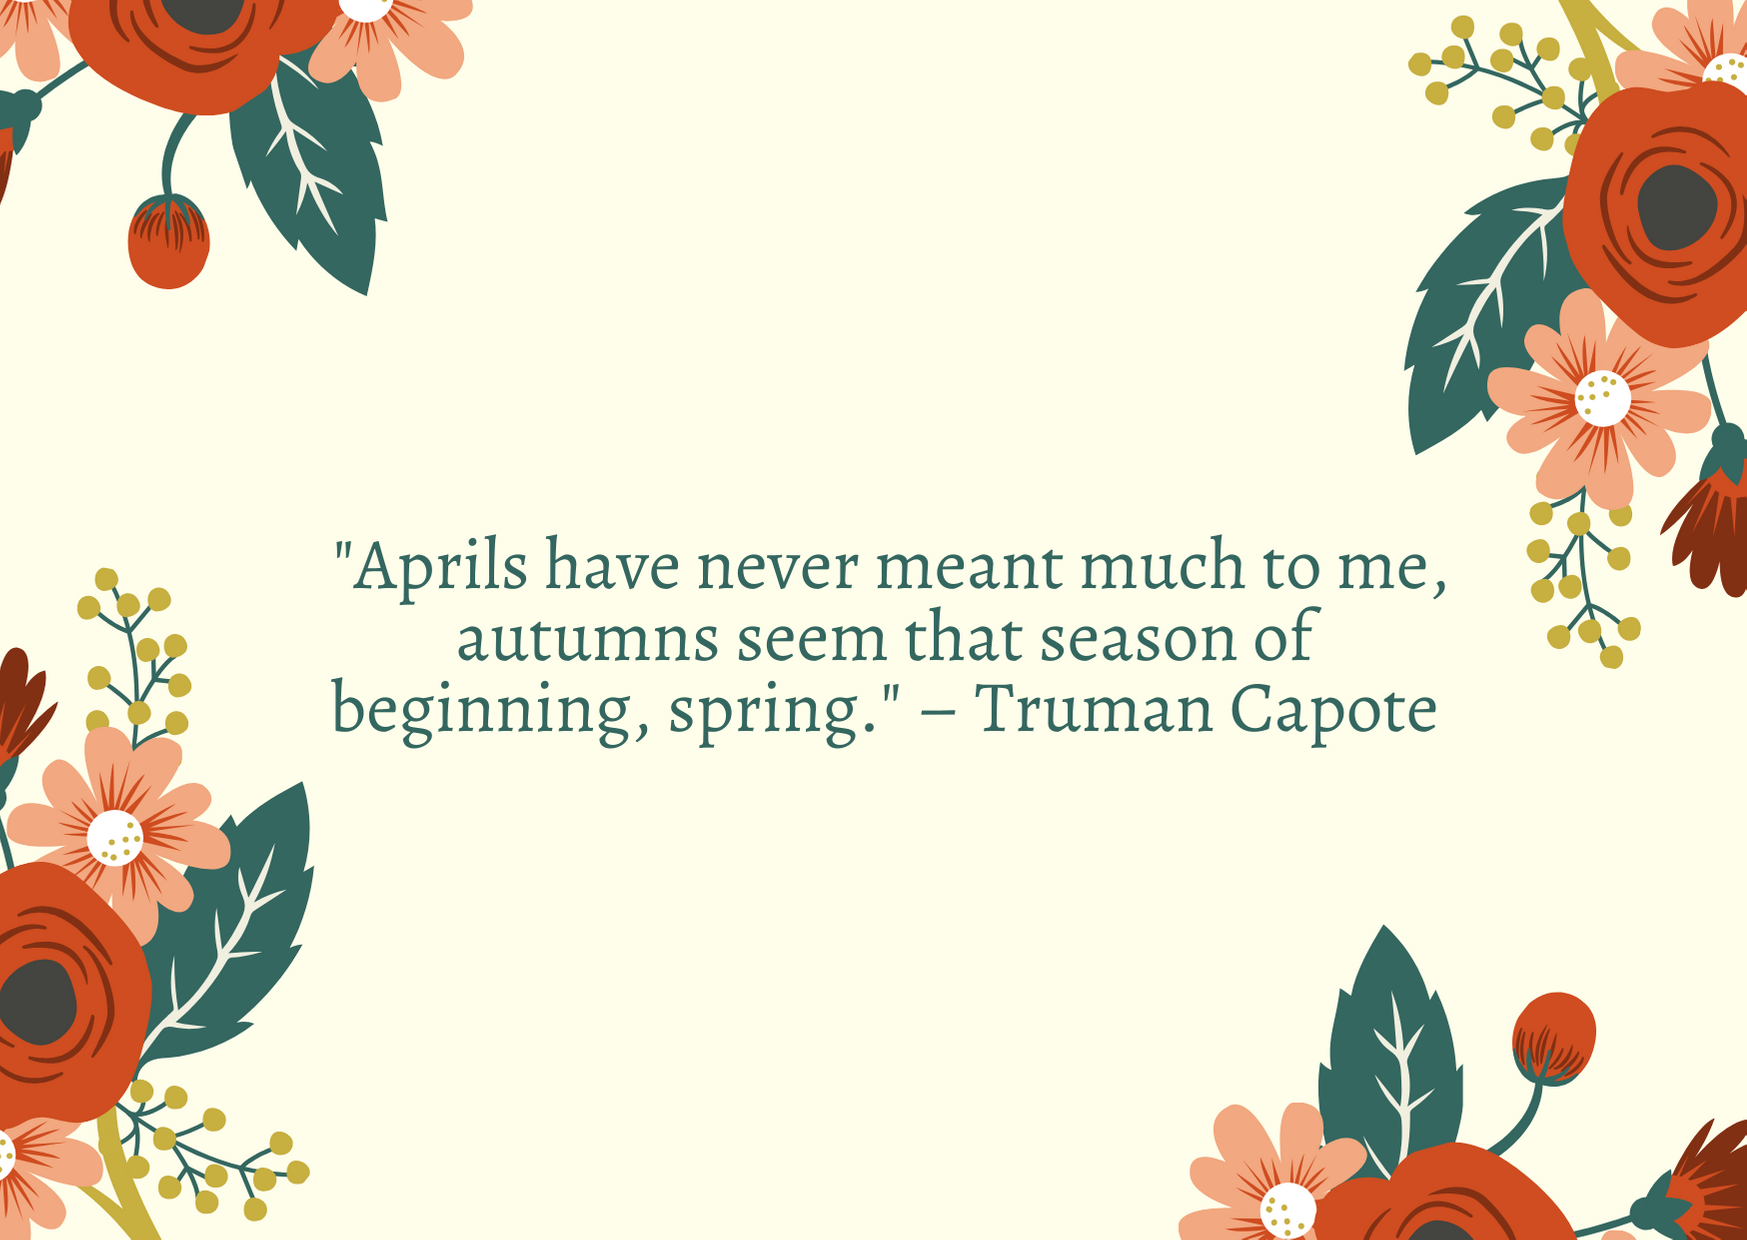 """Aprils have never meant much to me, autumns seem that season of beginning, spring."" – Truman Capote"